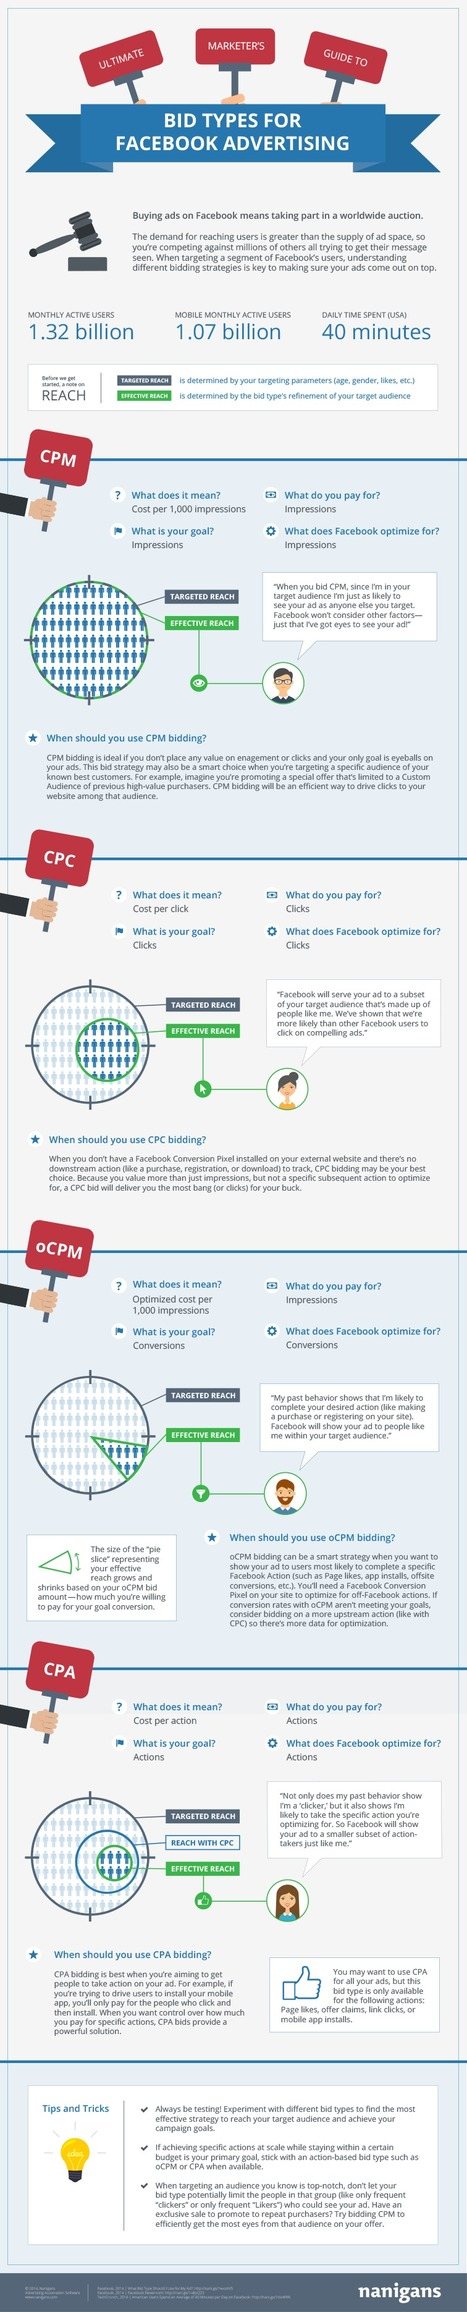 Infographic: Guide to bid types for Facebook advertising | MarketingHits | Scoop.it